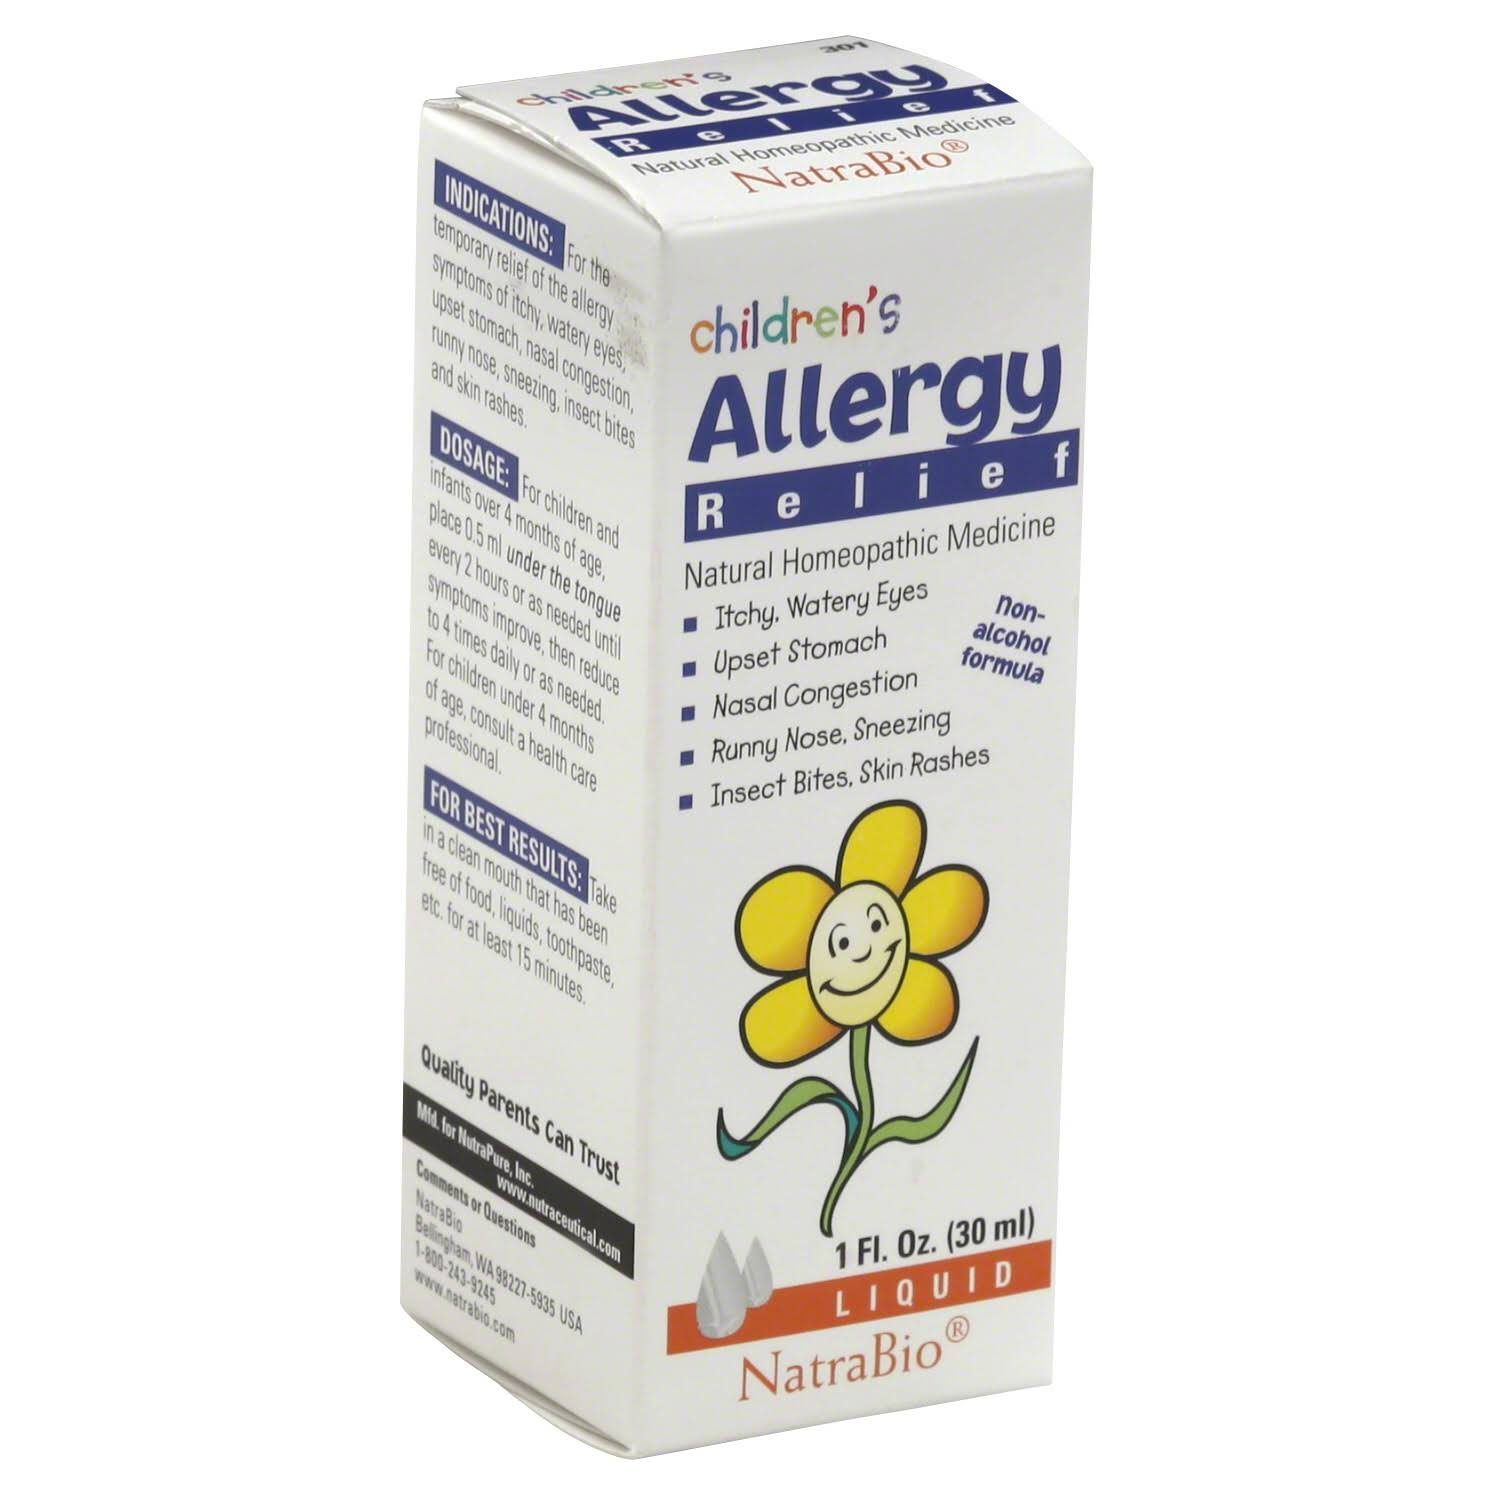 Natrabio Children's Allergy Relief Liquid - 1oz